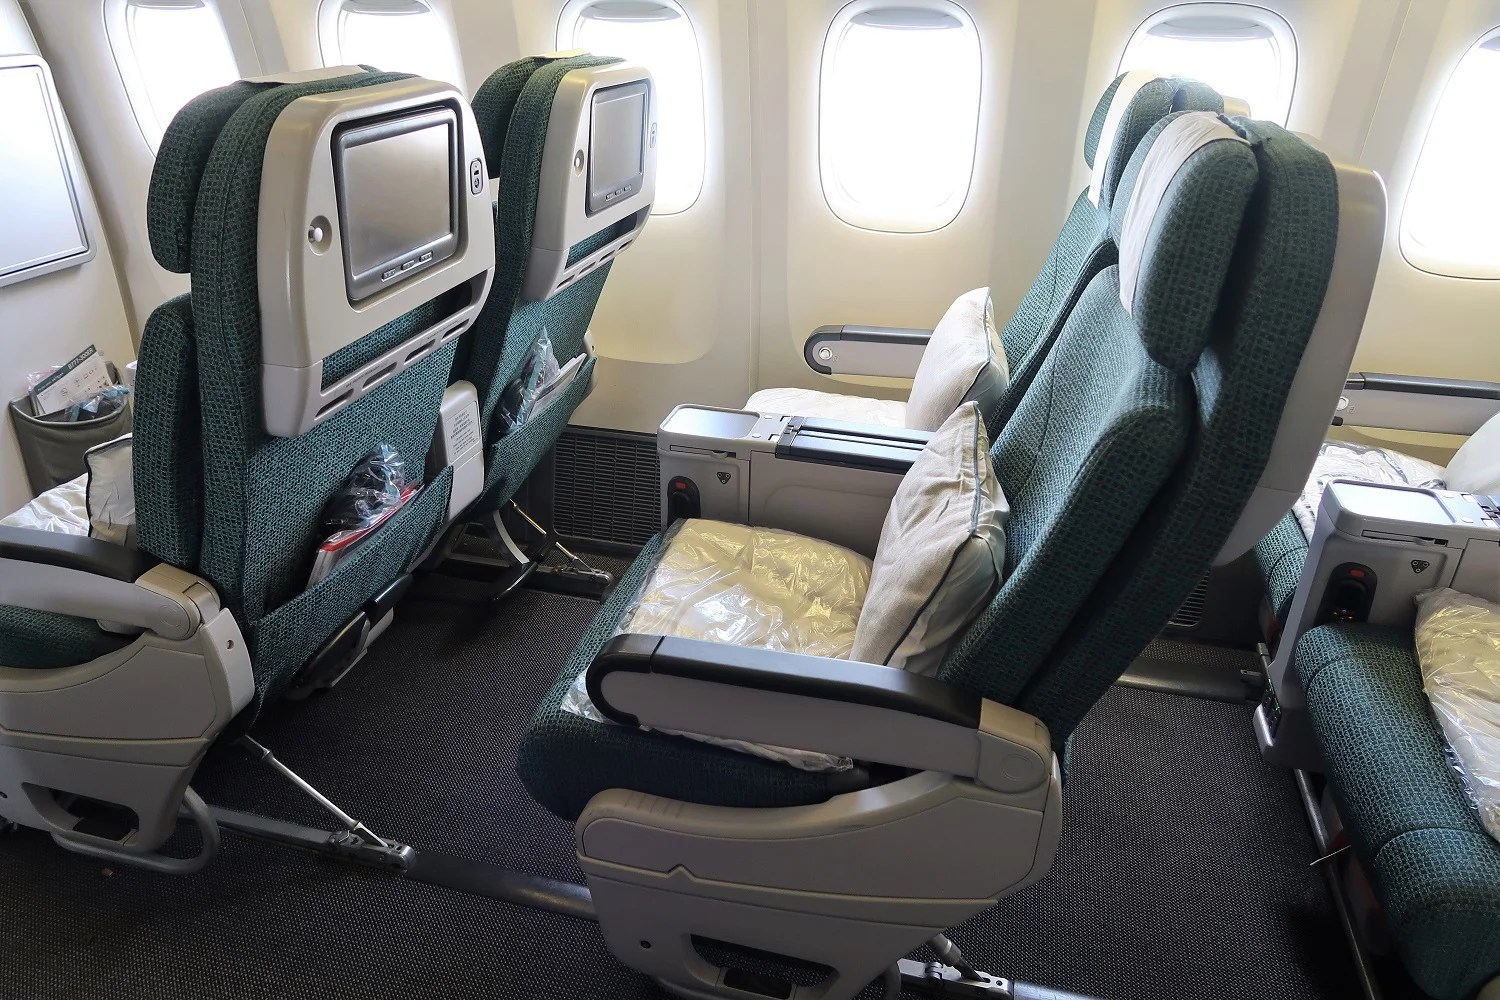 Thick seat padding and footrests, but no legrests on the 777.